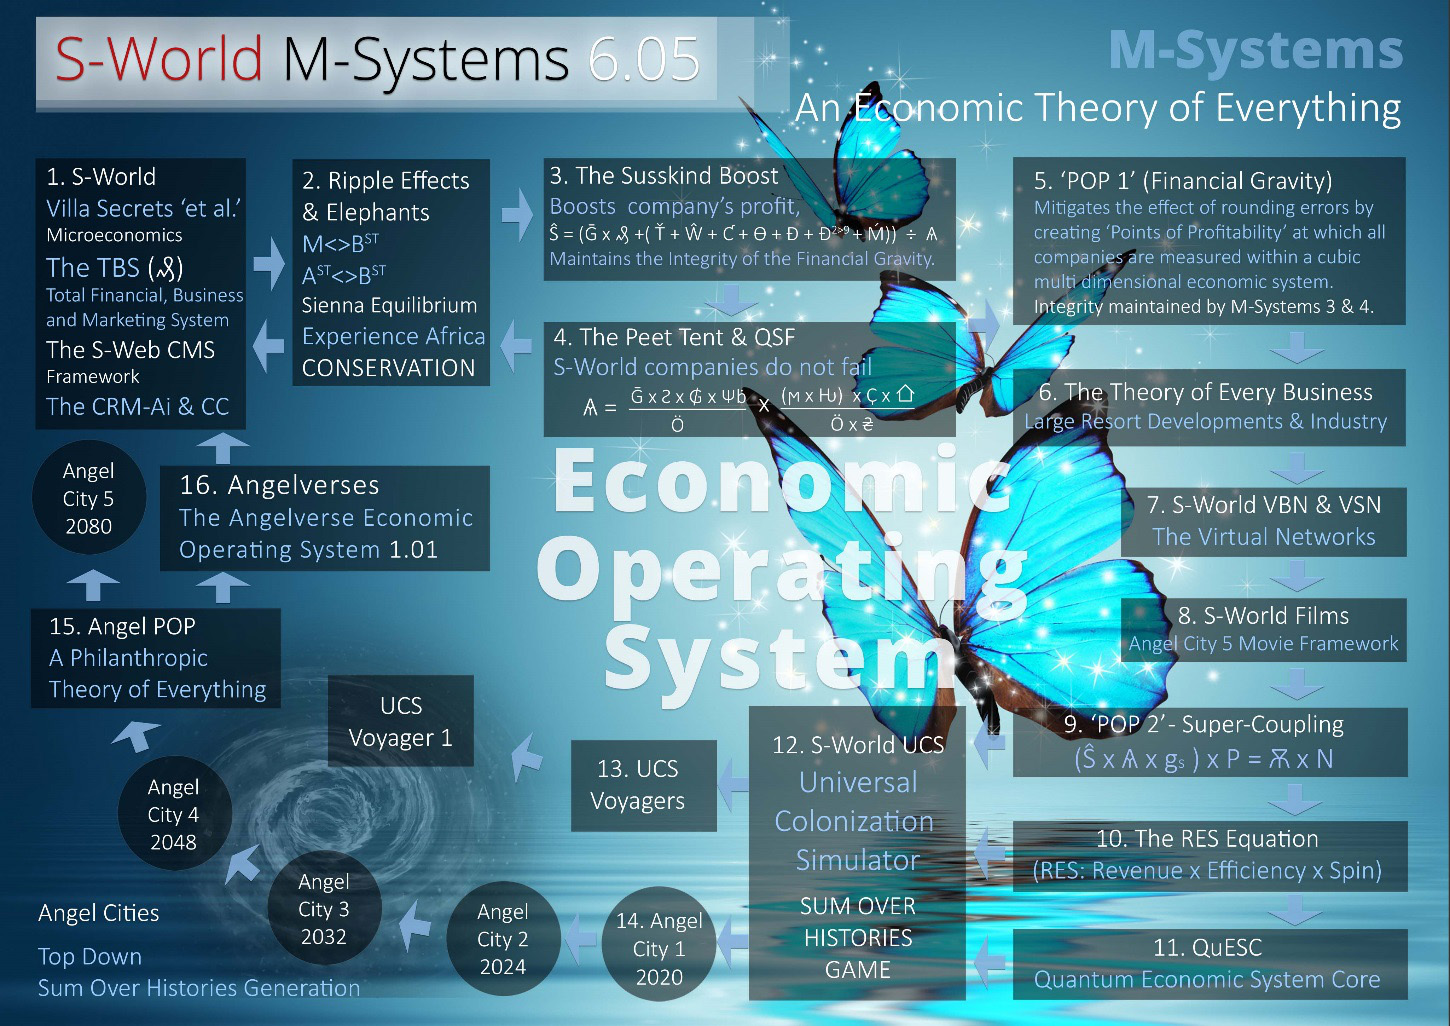 s-world m-systems - an economic theory of everything (E-TOE)